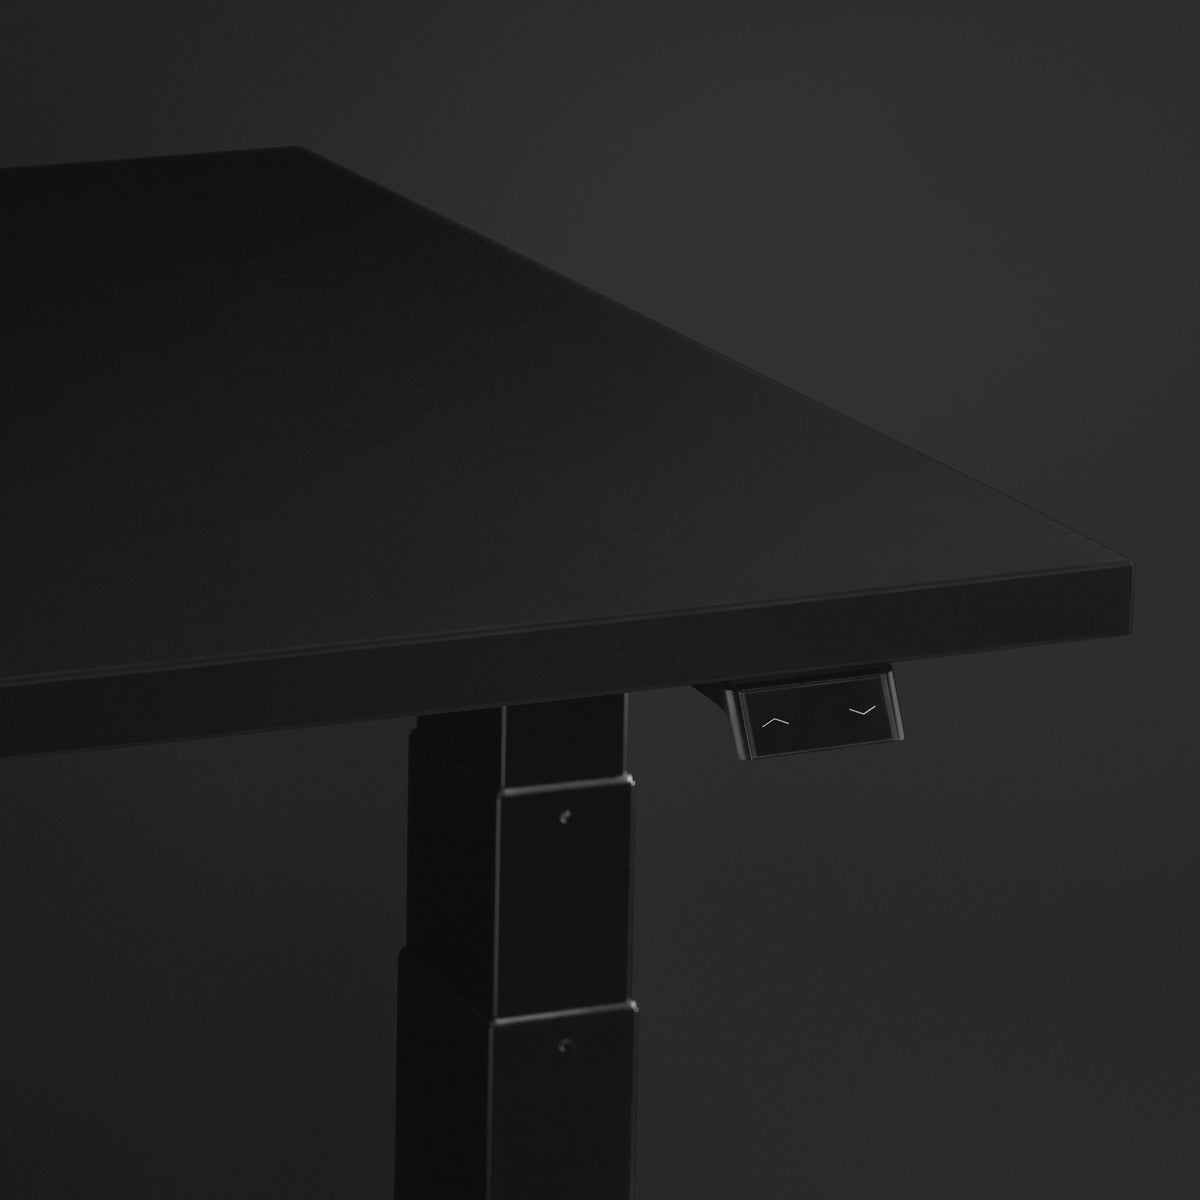 Nevi Gaming Desk surface close-up featuring the easy-touch adjustment switch with dark grey background